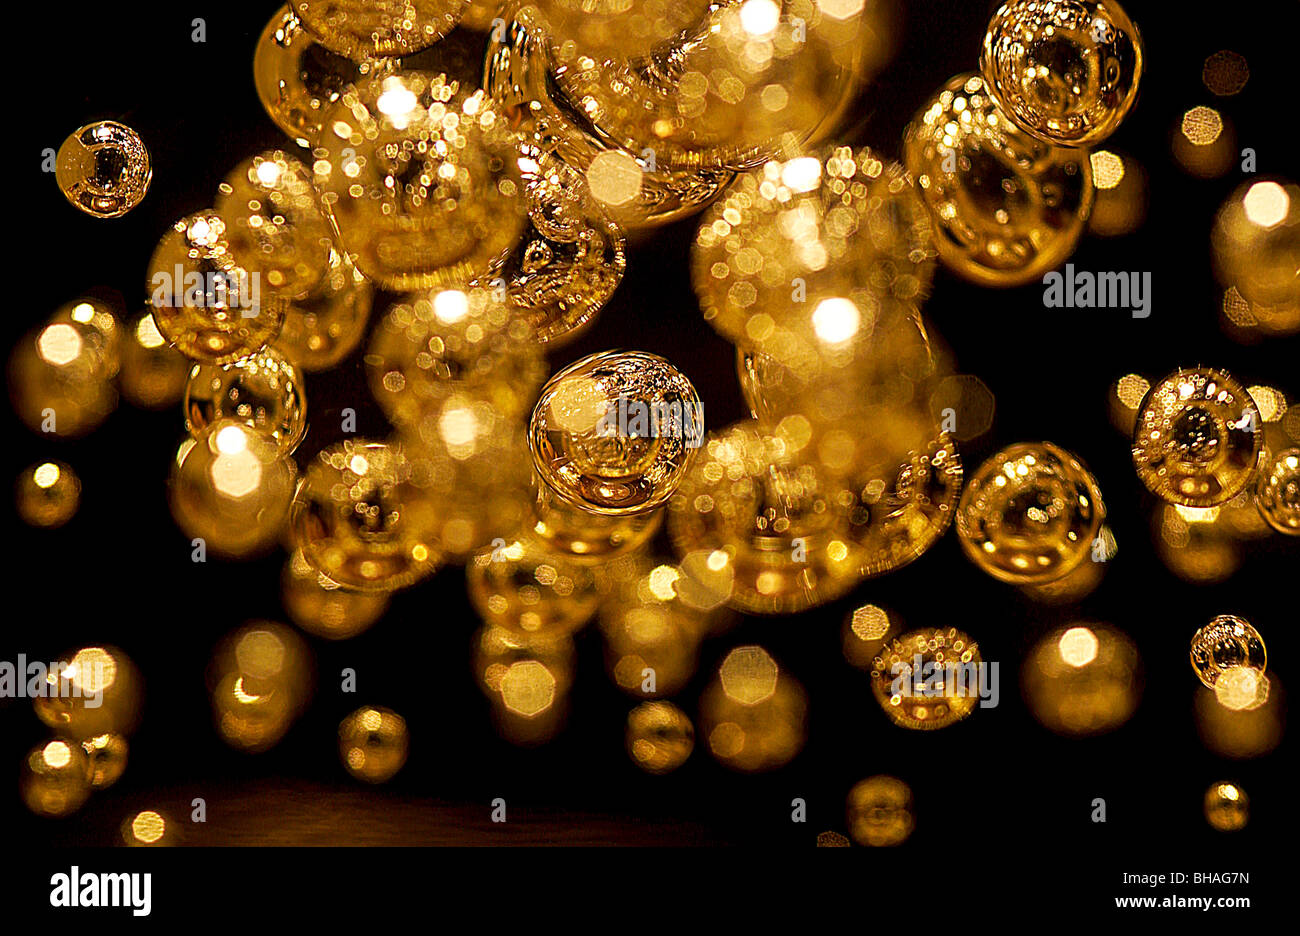 Golden bubbles in a block of clear plastic - Stock Image